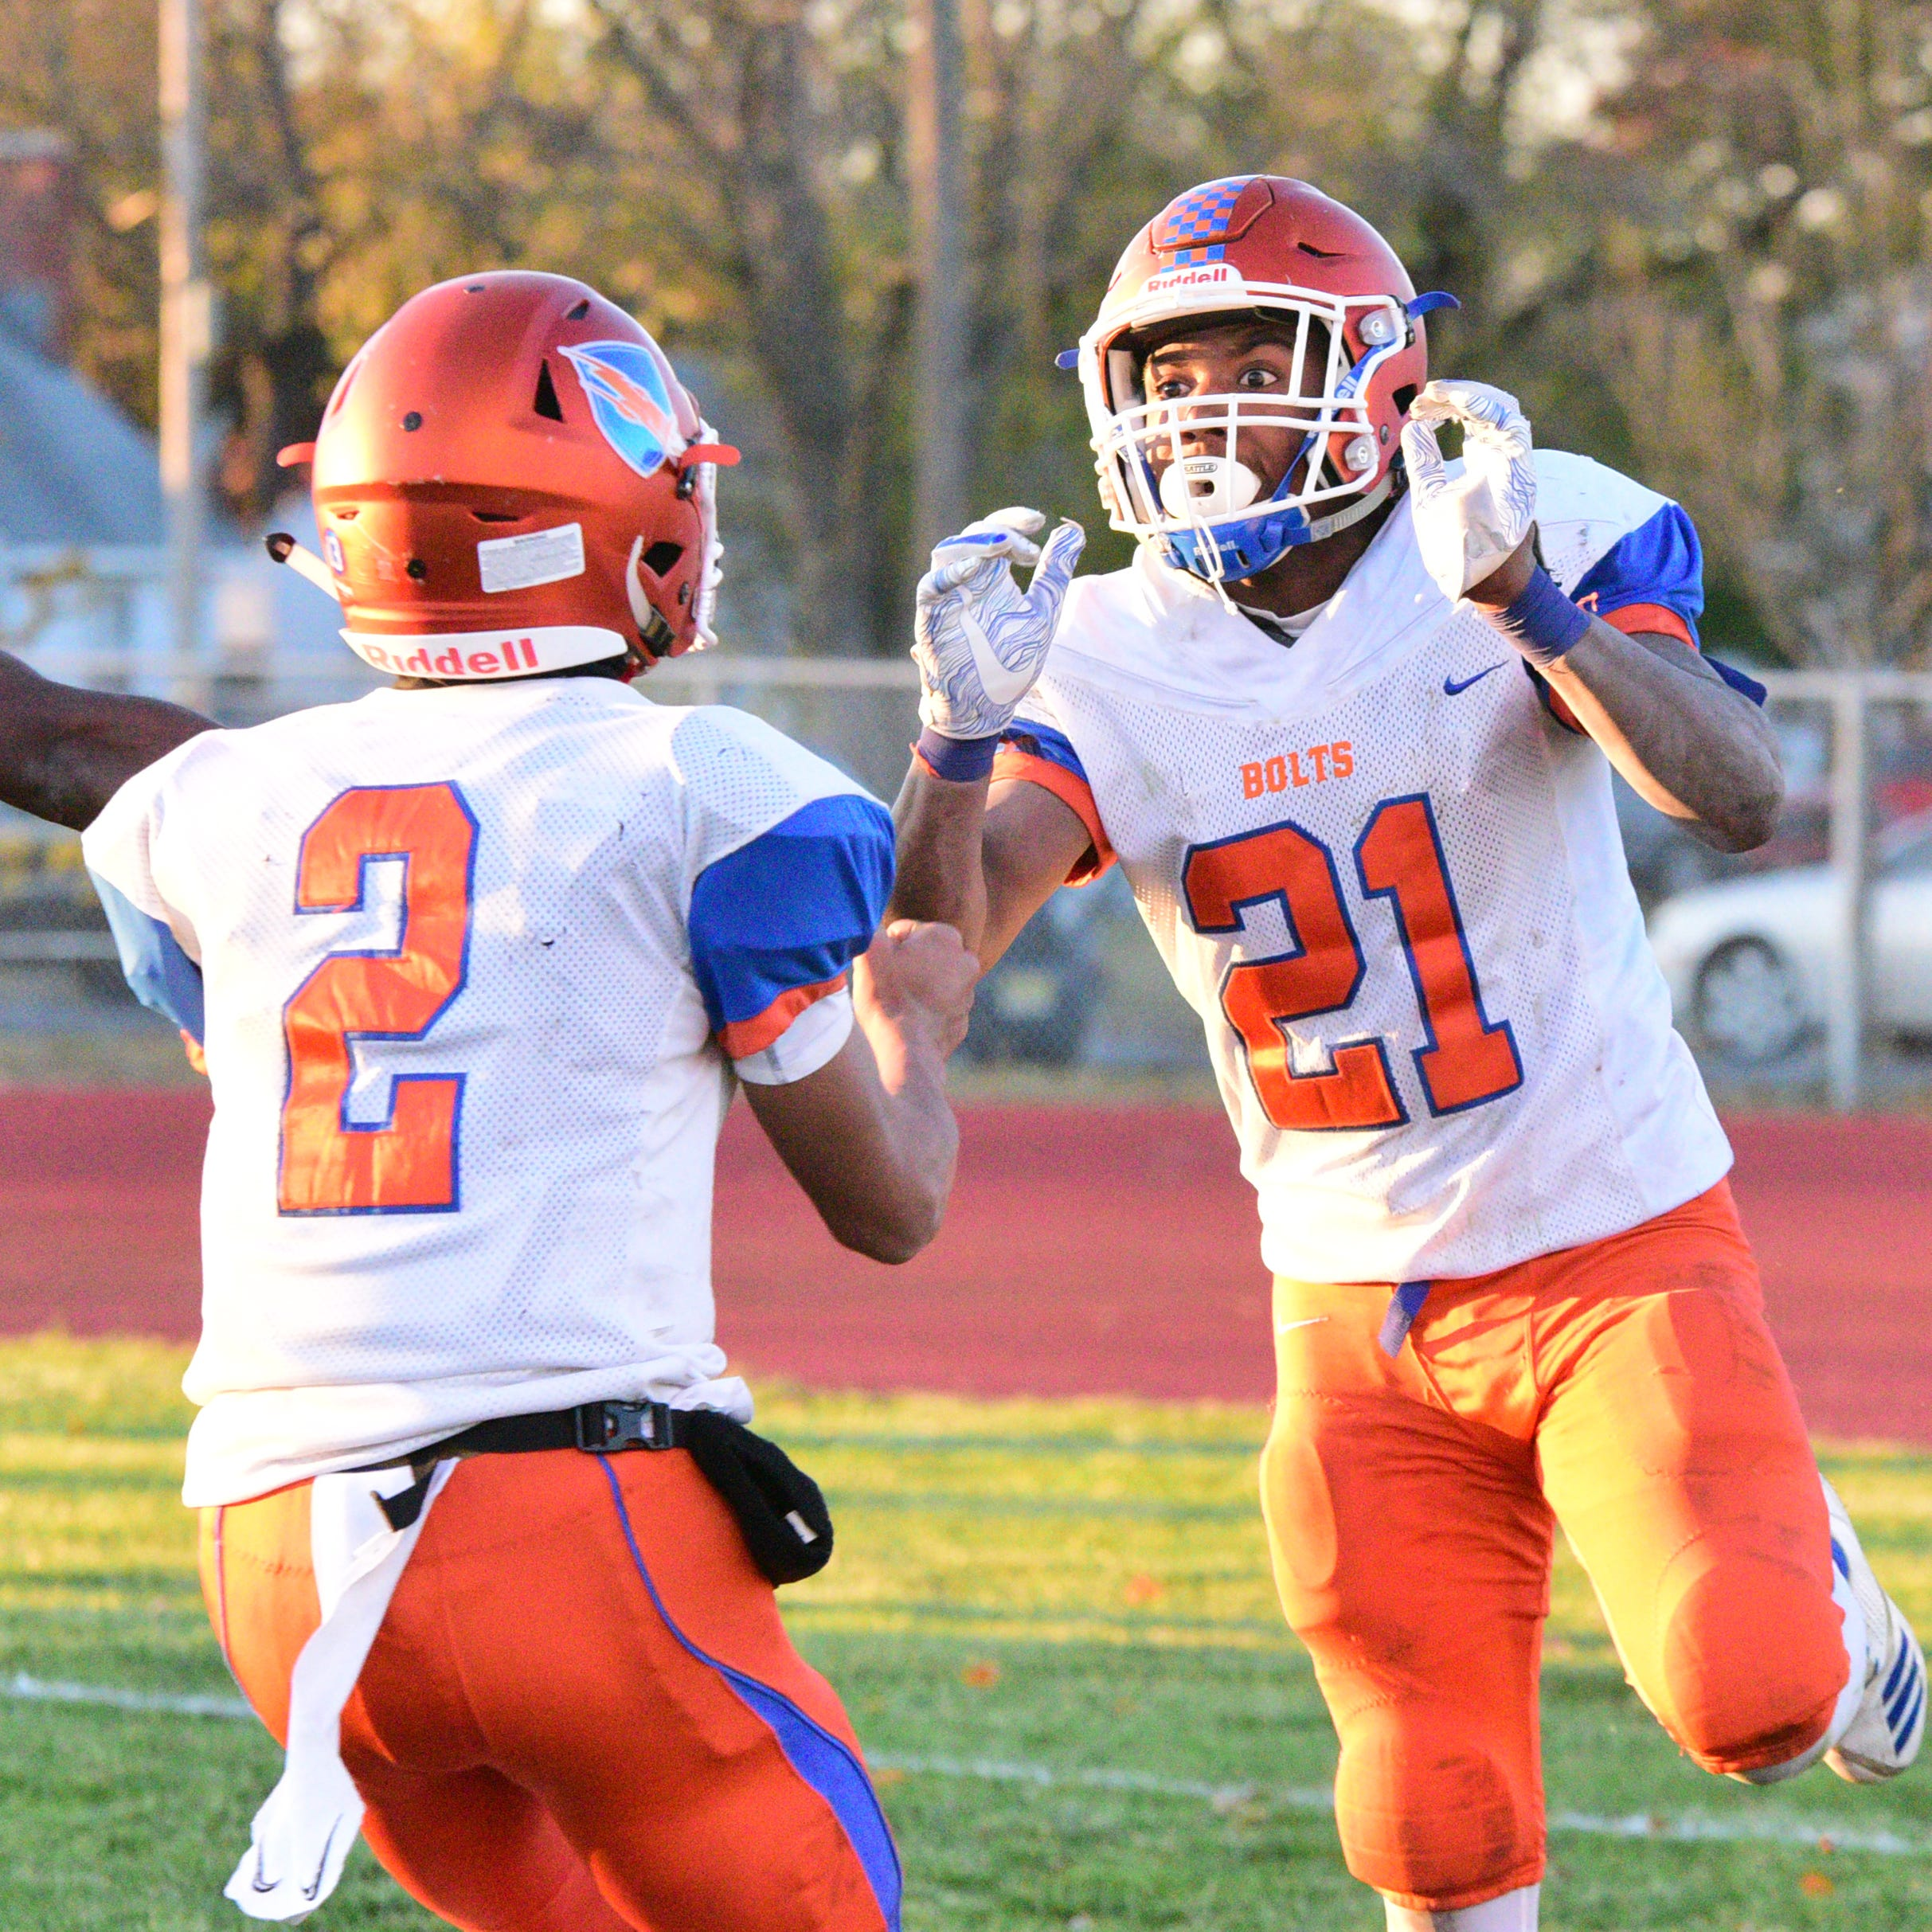 Football: Mistakes bring untimely end to Millville's title hopes